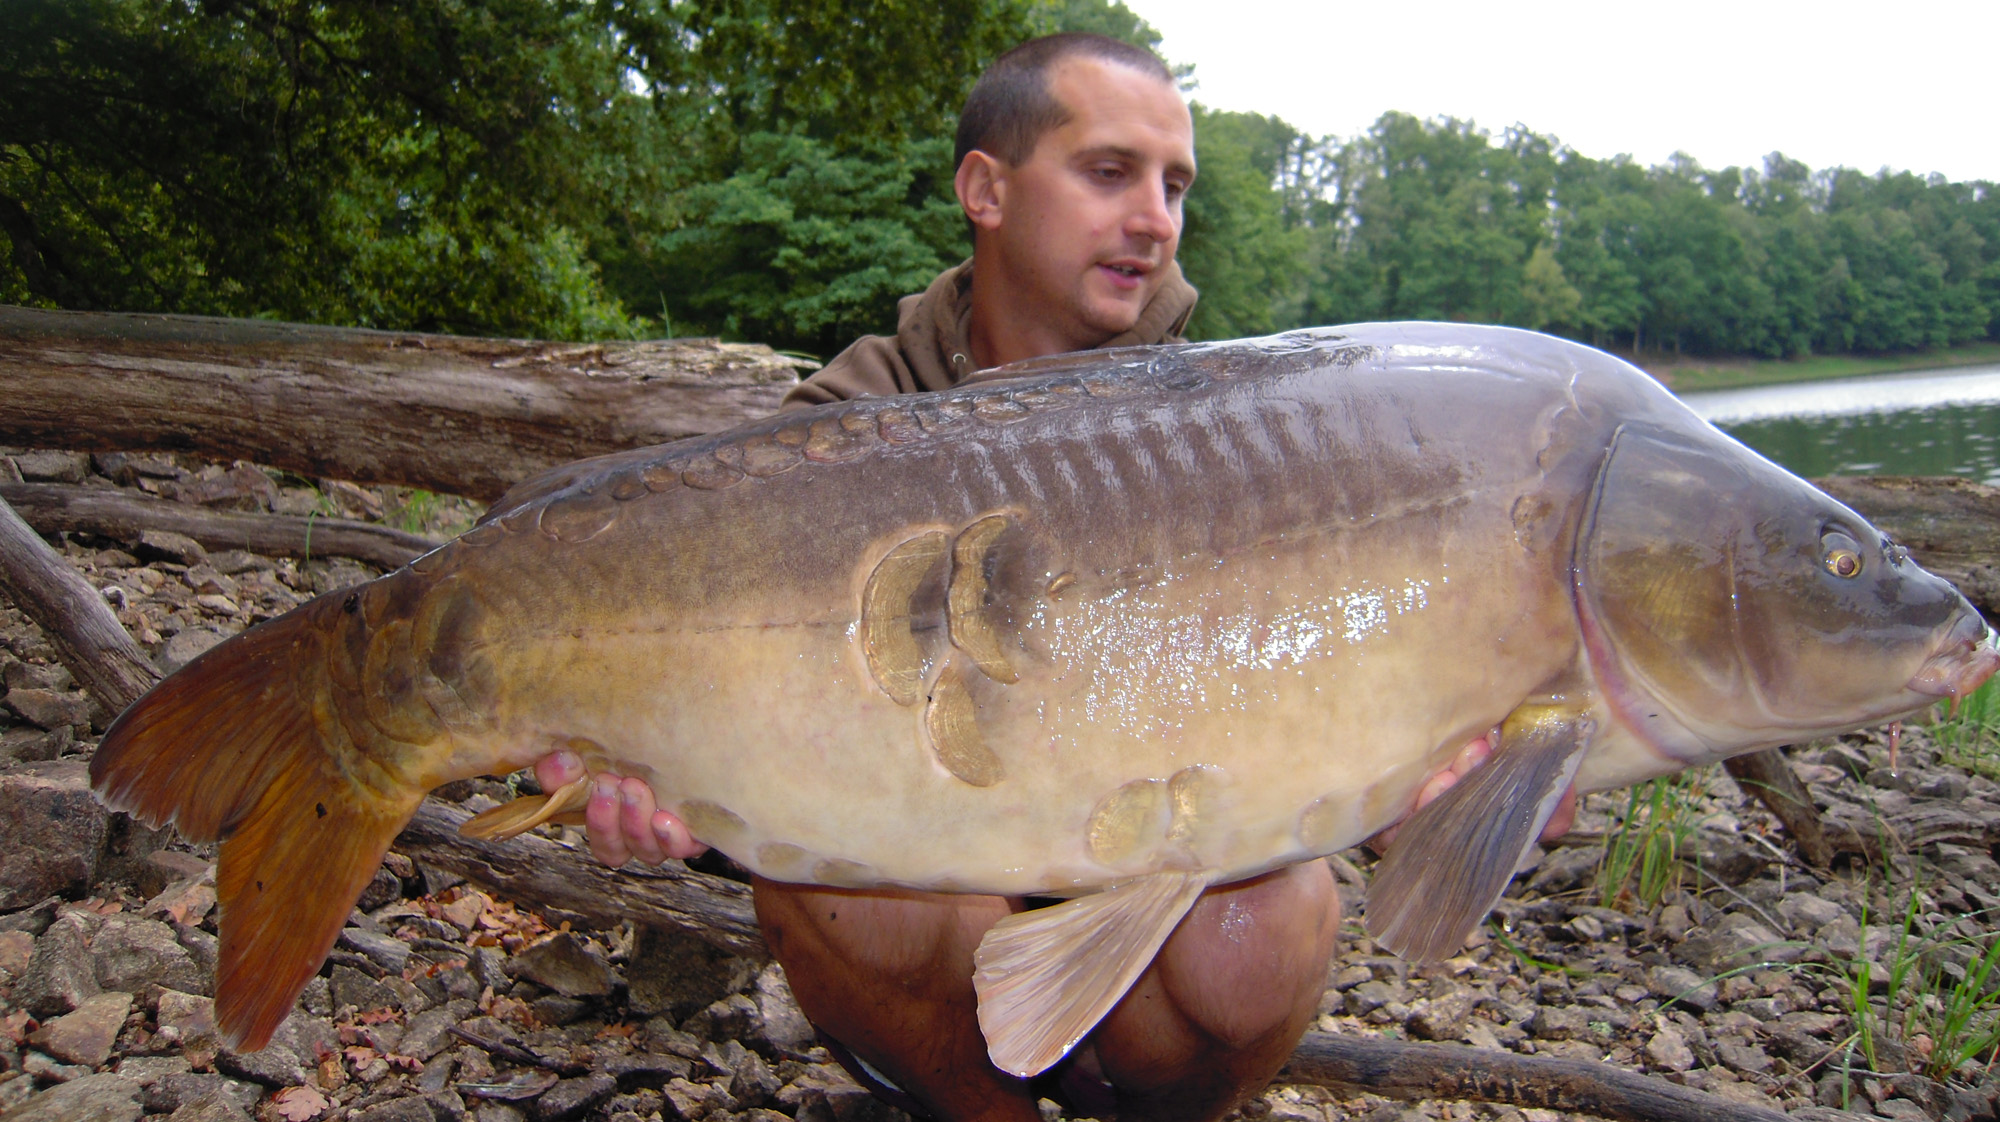 http://starbaits.com/fichiers/images/team/gallery/COLLET_Jerome/4 Jérôme Collet.jpg